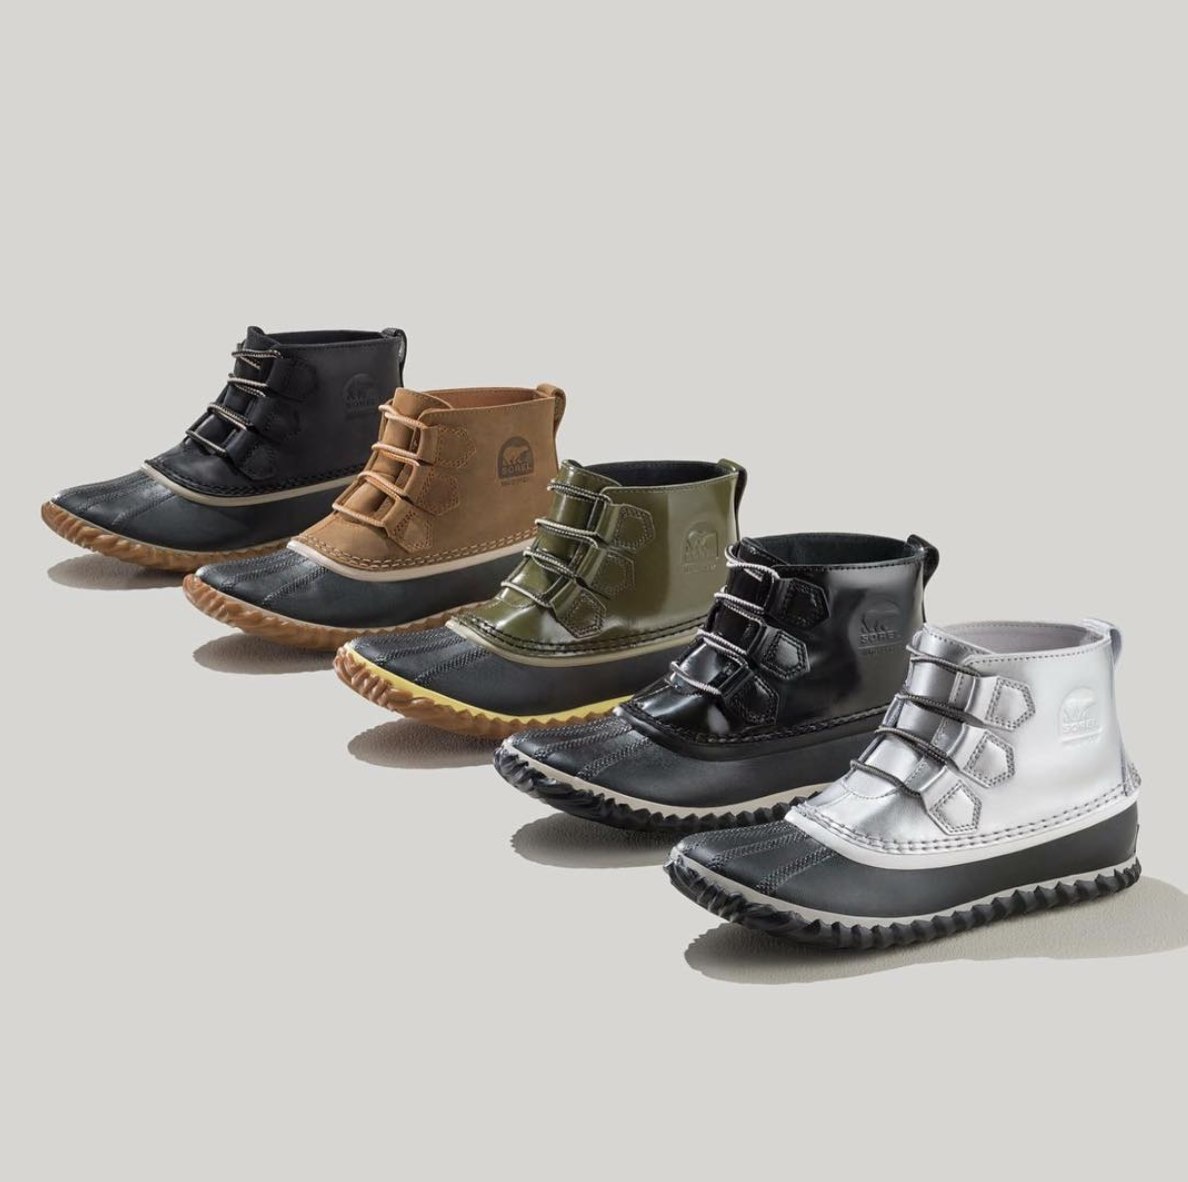 7 - NEW 8 HABIT MEN/'S  ALL-WEATHER BOOT COLOR: GREEN SIZE: